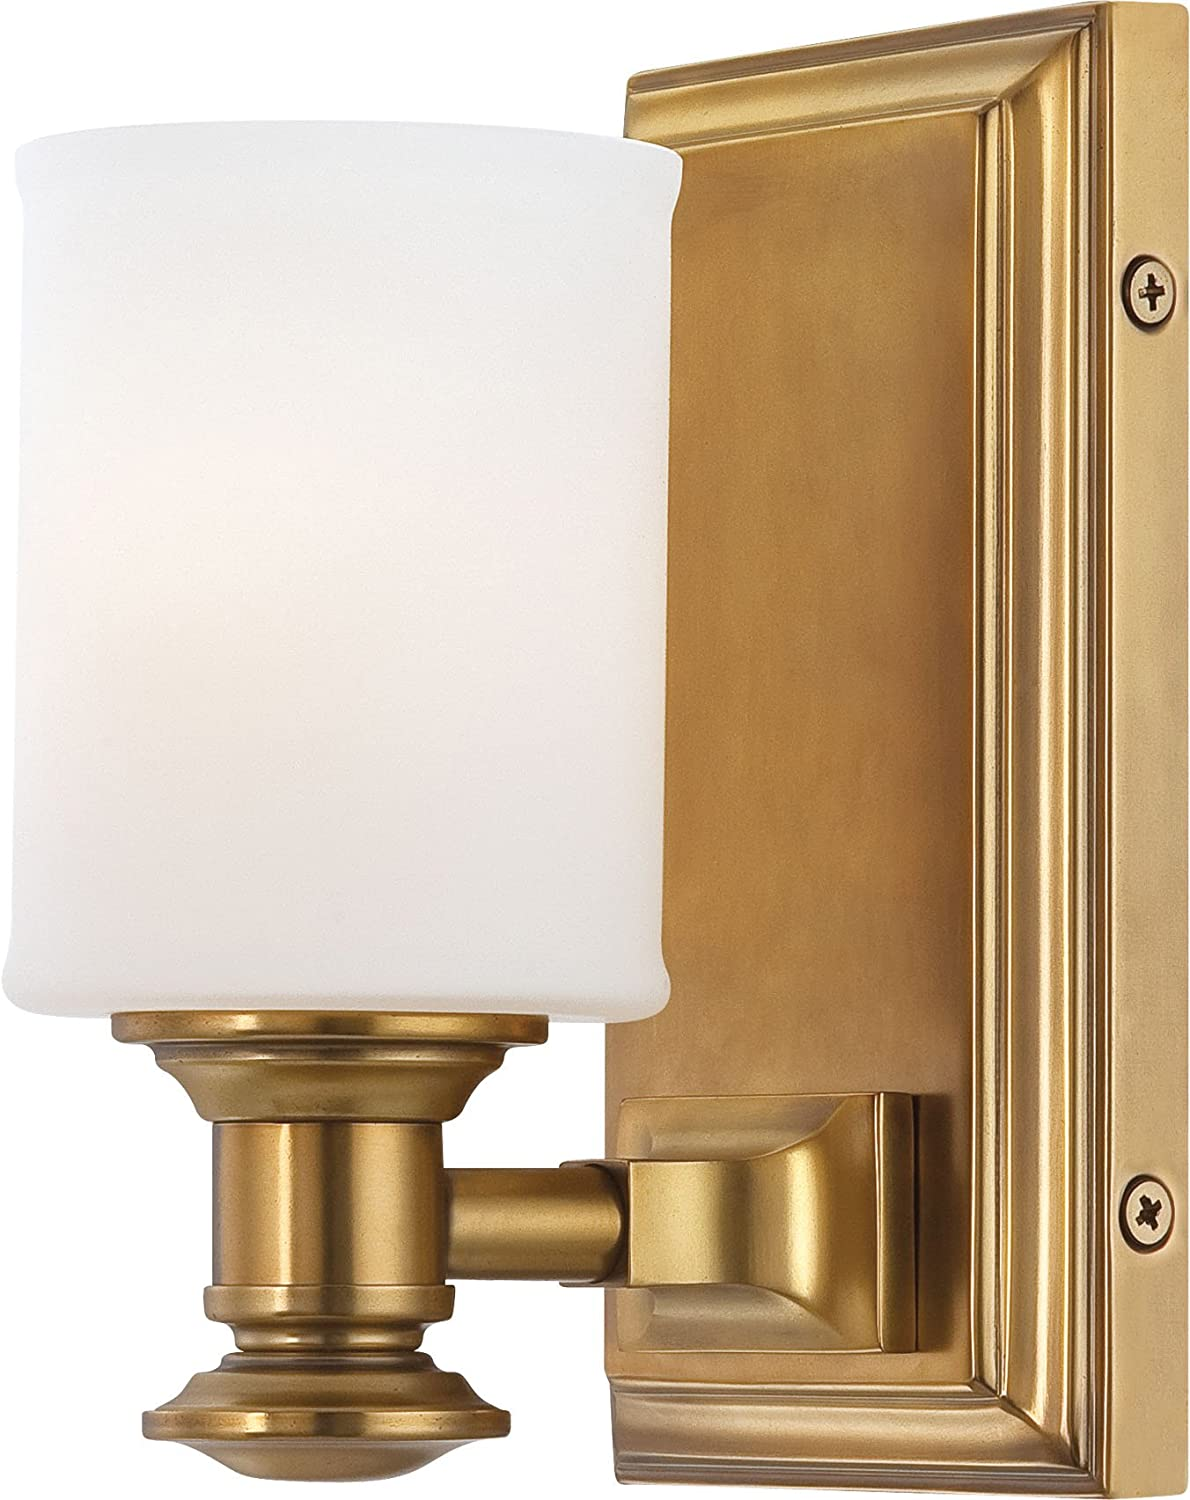 Minka Lavery Wall Light Fixtures Harbour Point 5171-249 Glass Reversible 100w 8 H x 4 W Vanity Light in Brass